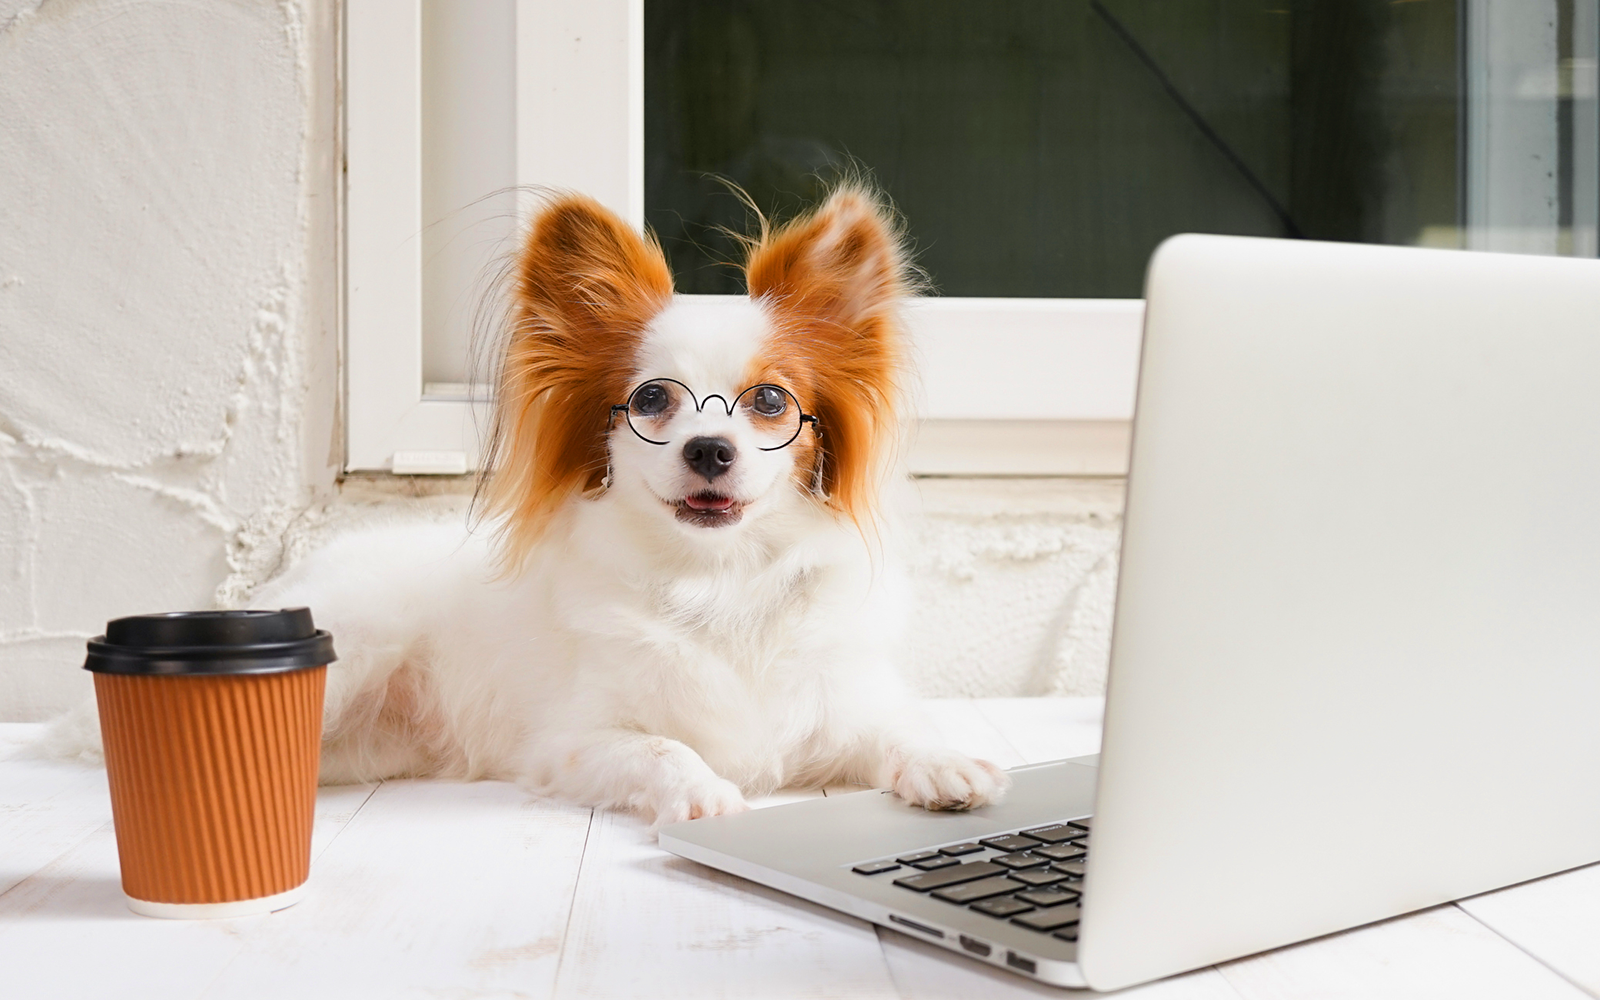 Dog wearing glasses working on laptop